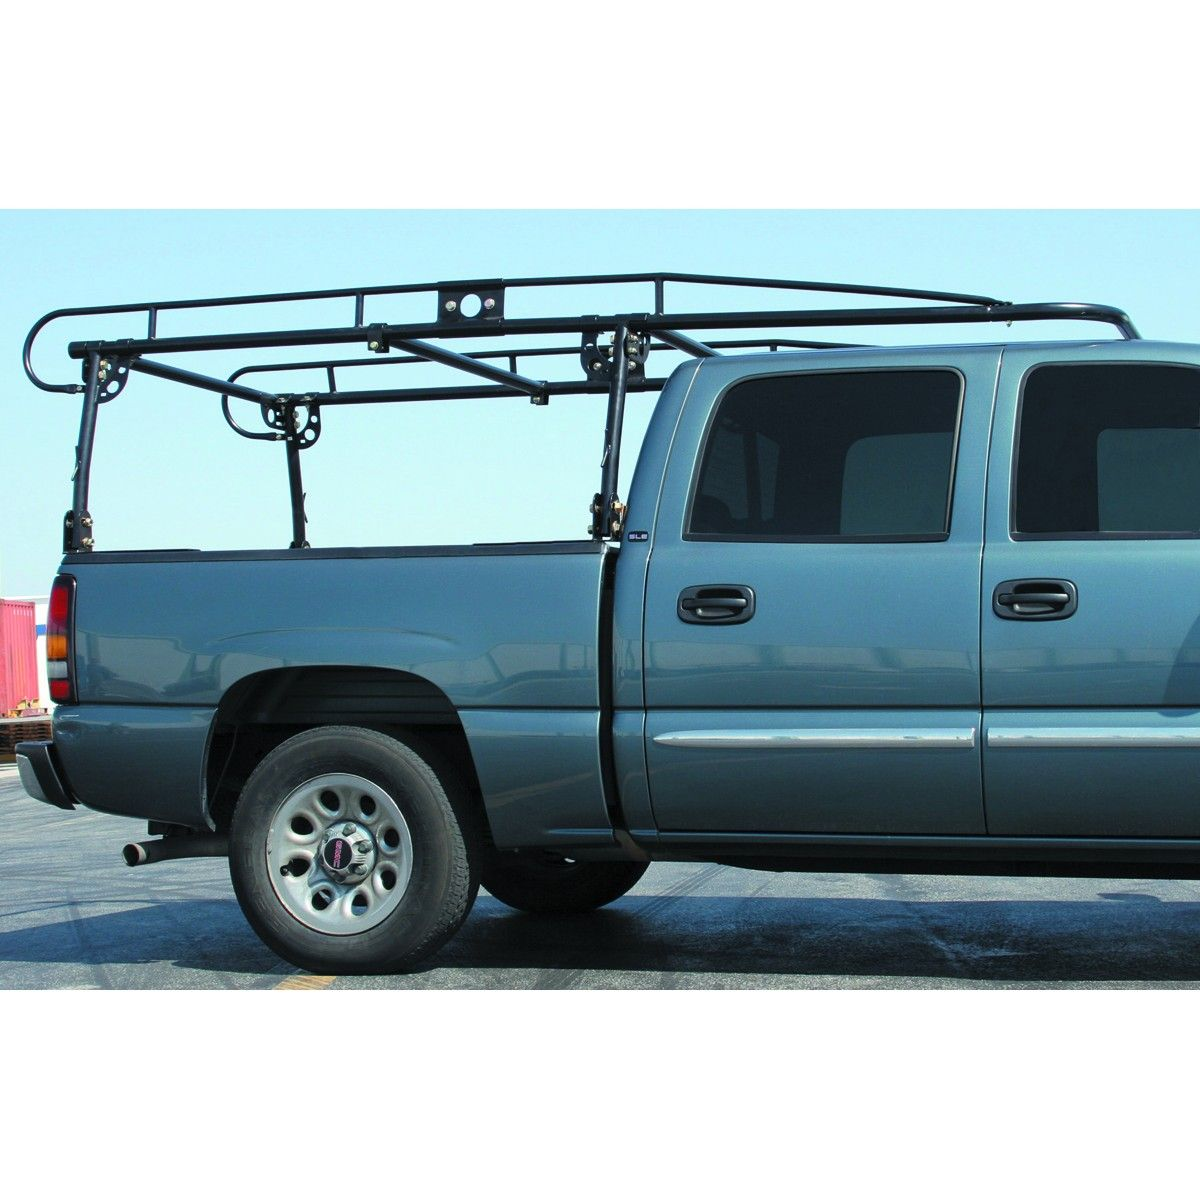 What are some types of contractor truck racks?